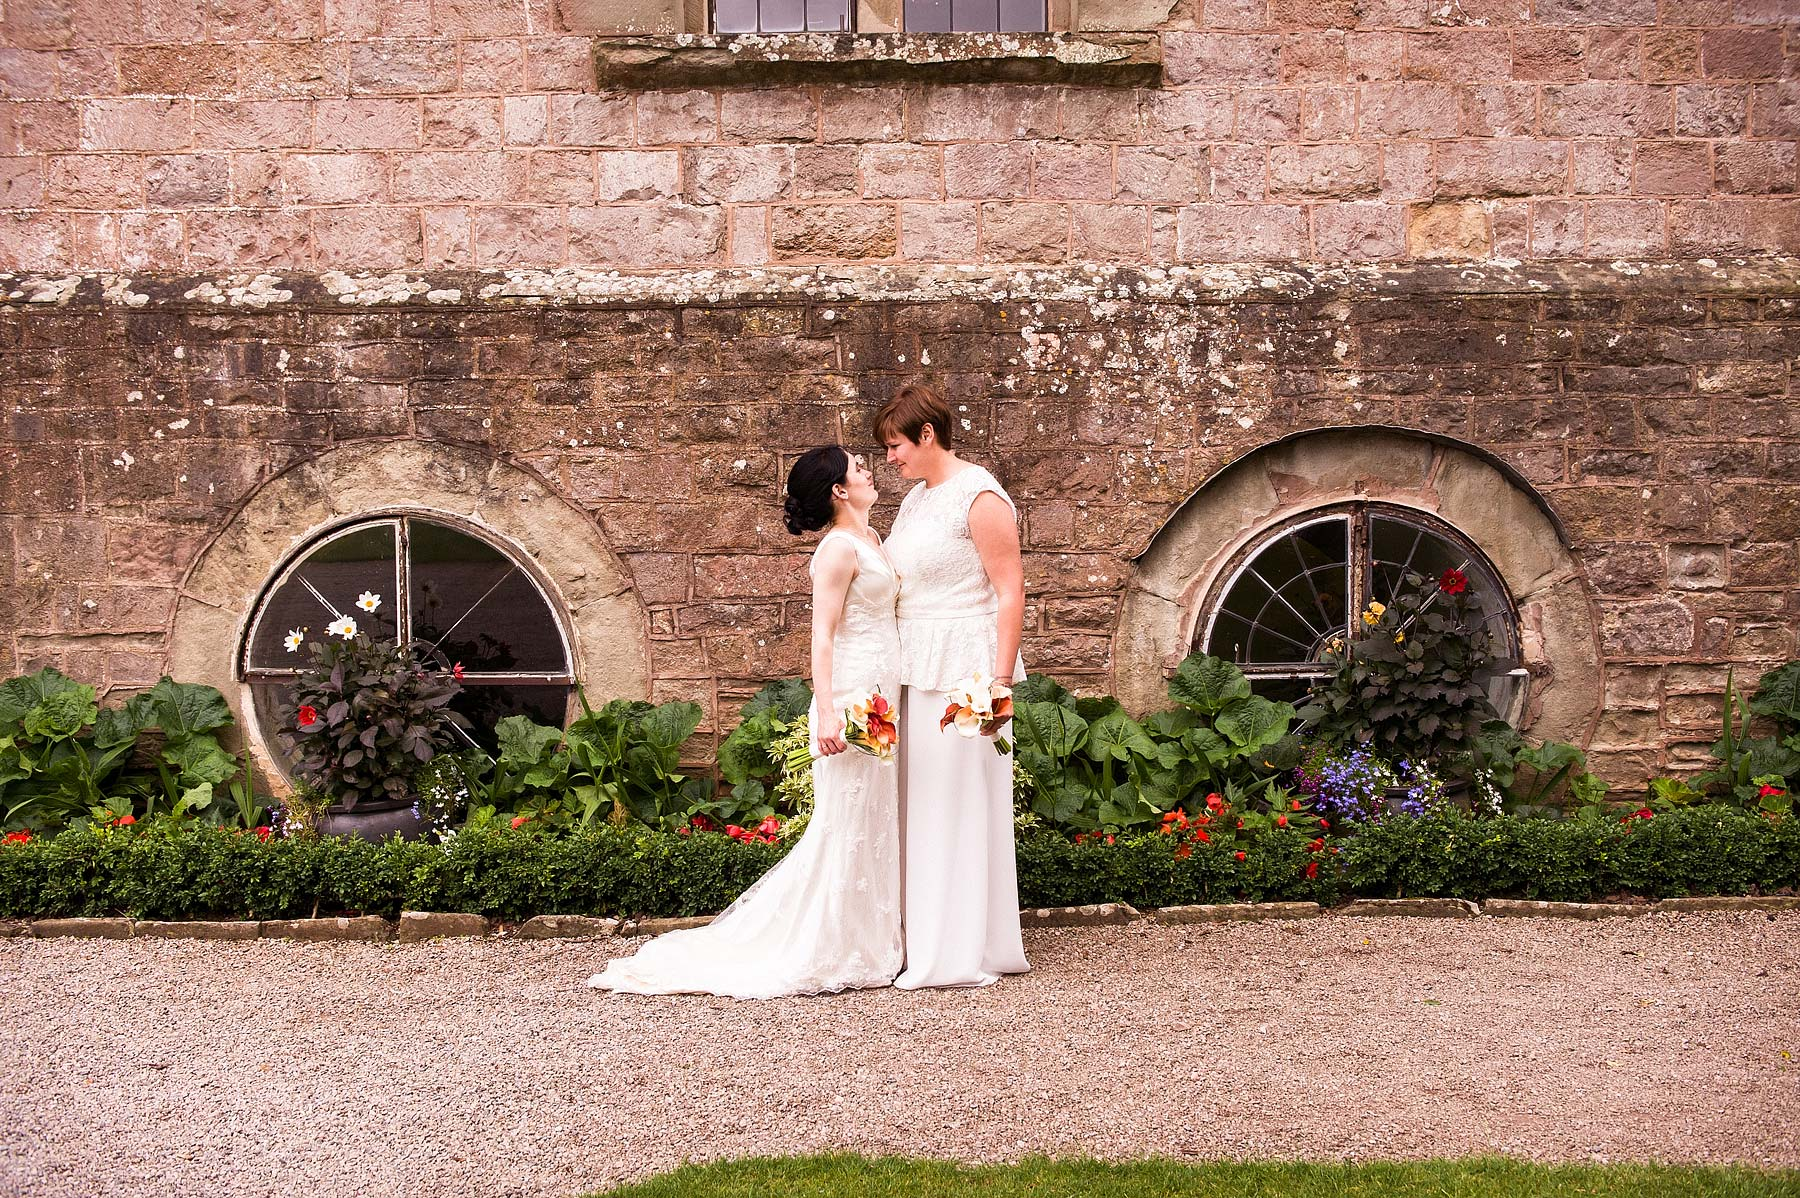 clearwell-castle-wedding-photographers-001